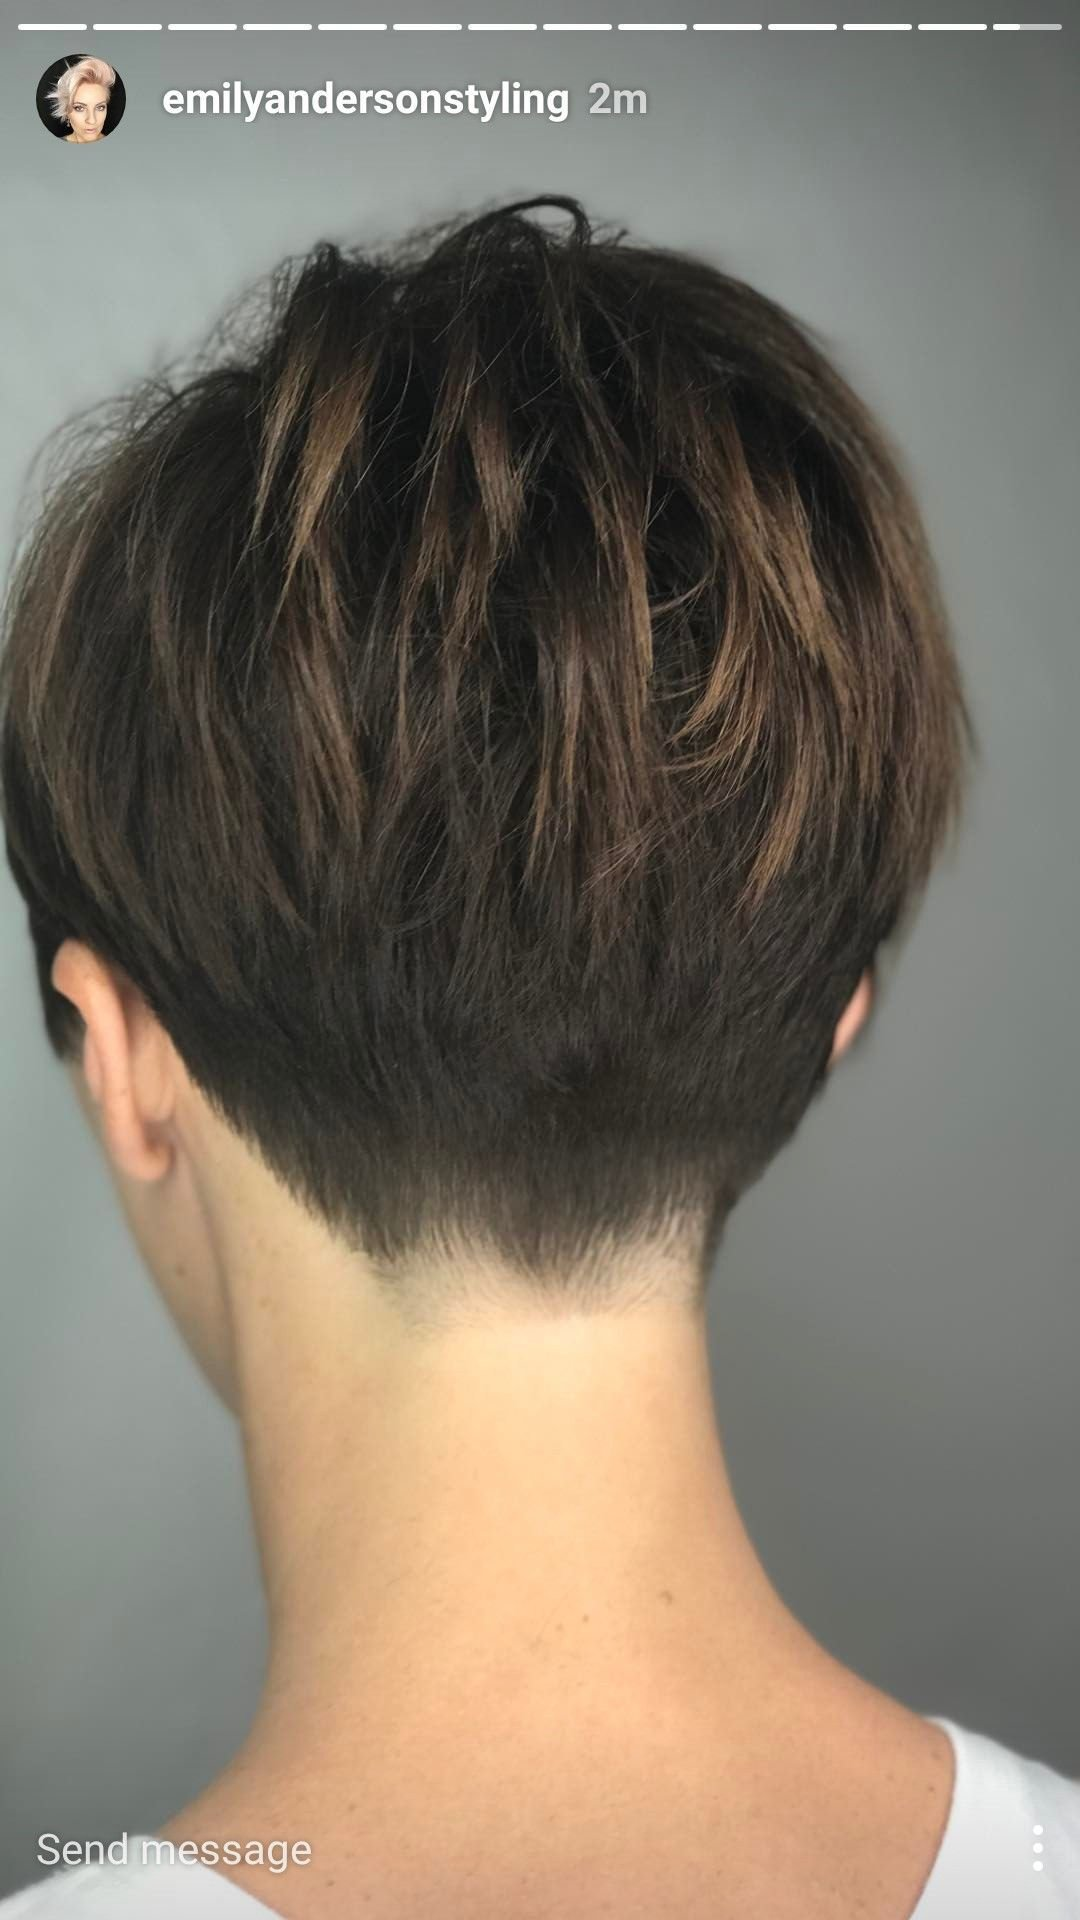 The Best Short Hair From Behind Hair In 2019 Pinterest Pictures